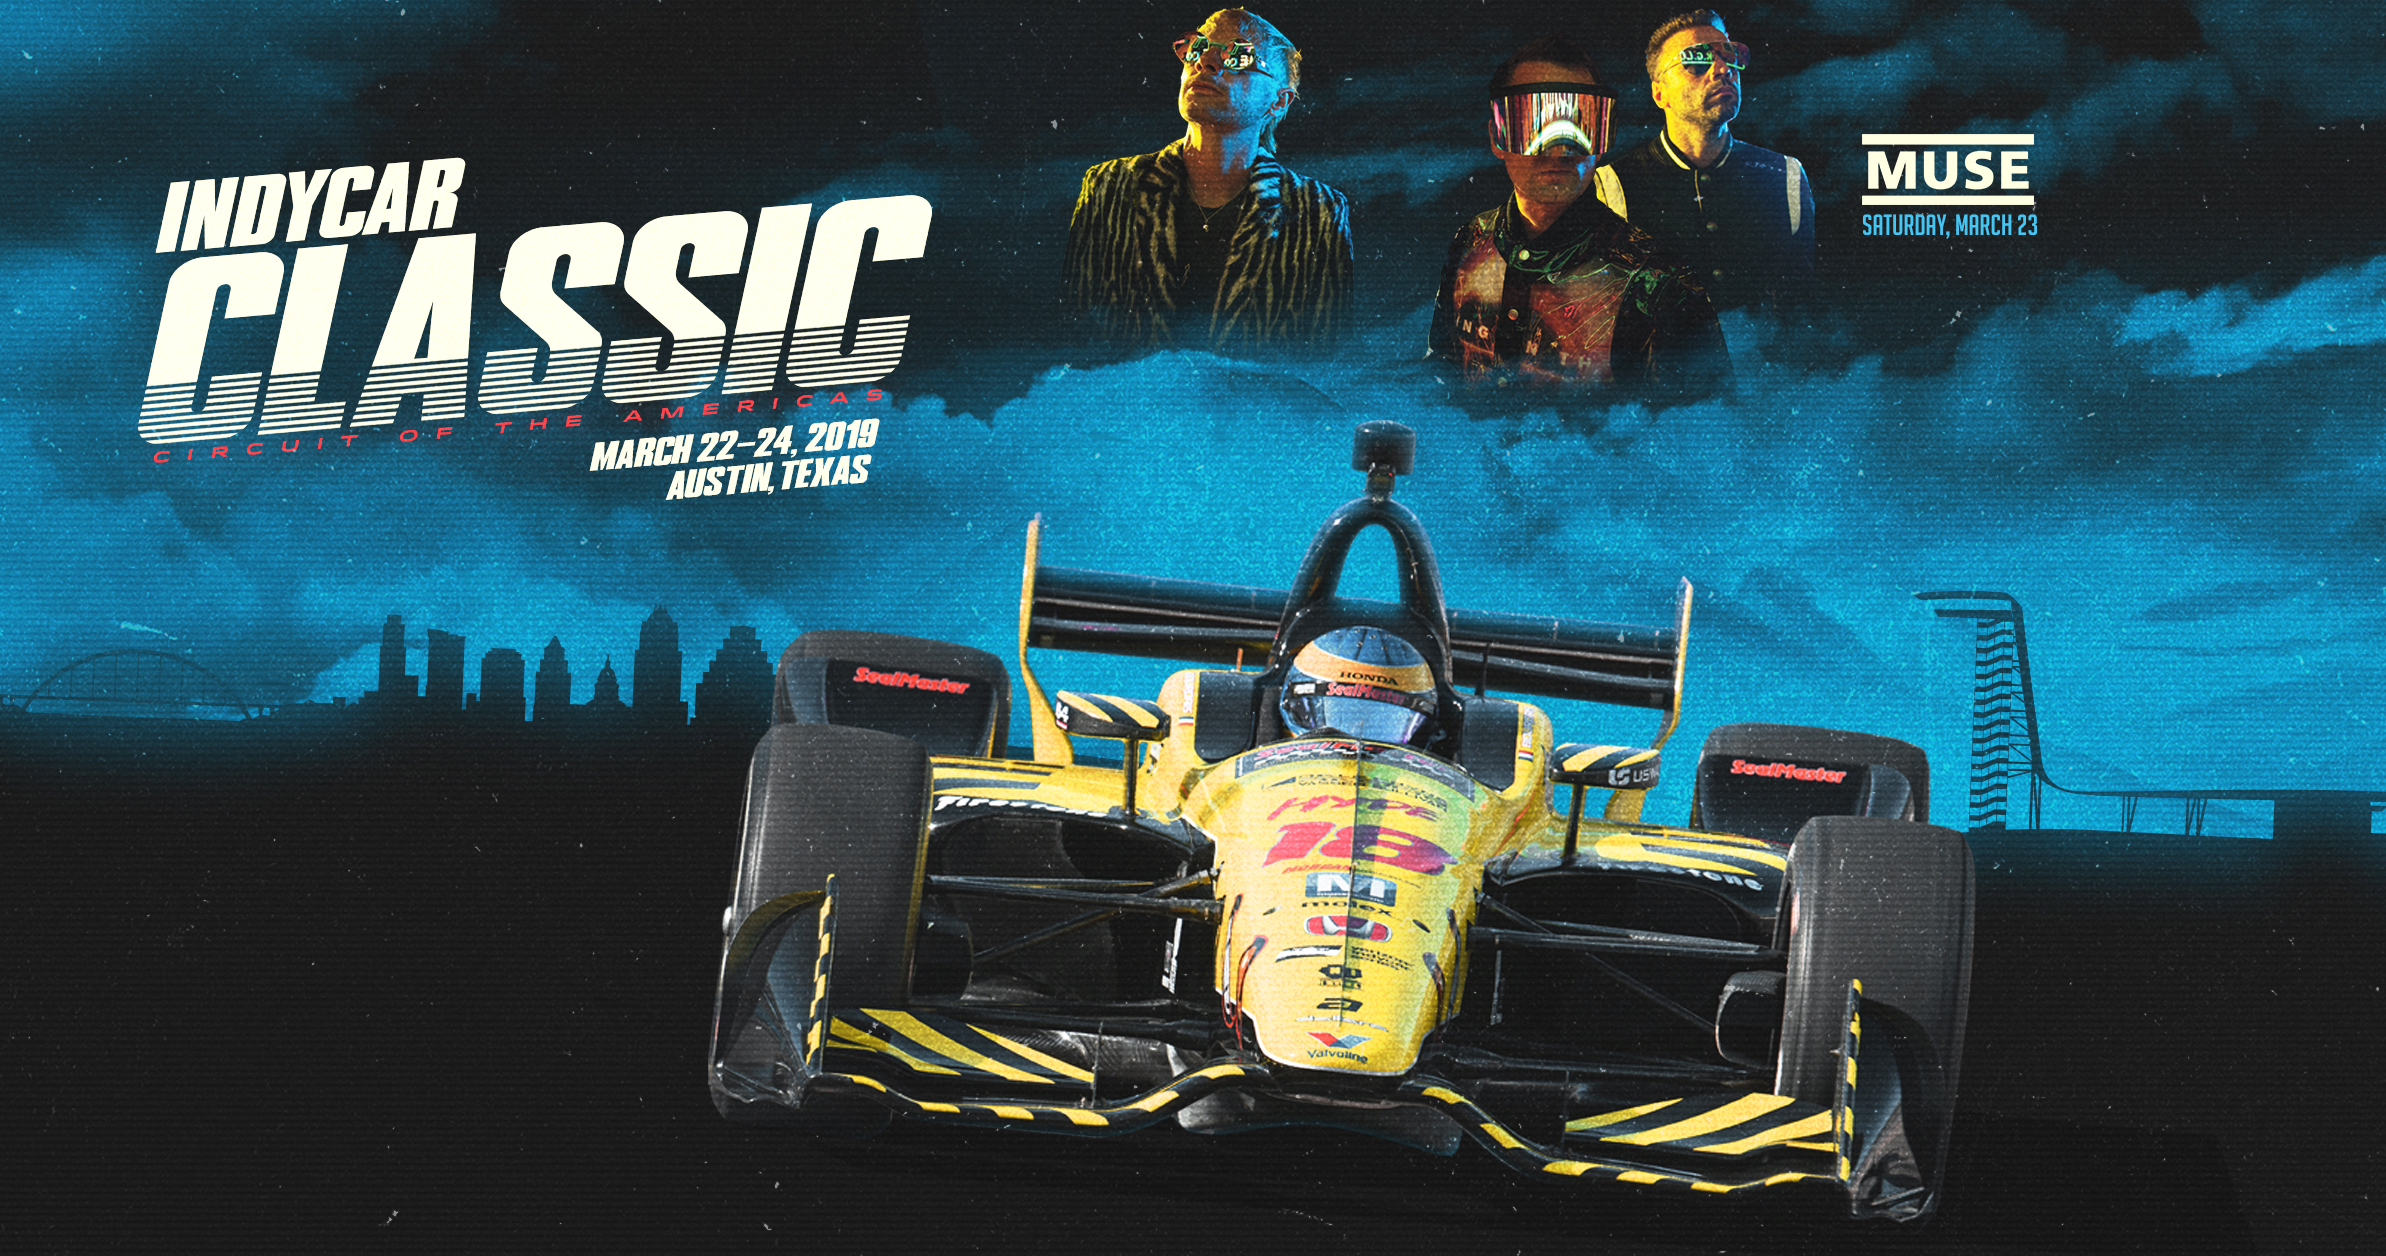 Indycar Classic March 22 24 2019 Circuit Of The Americas